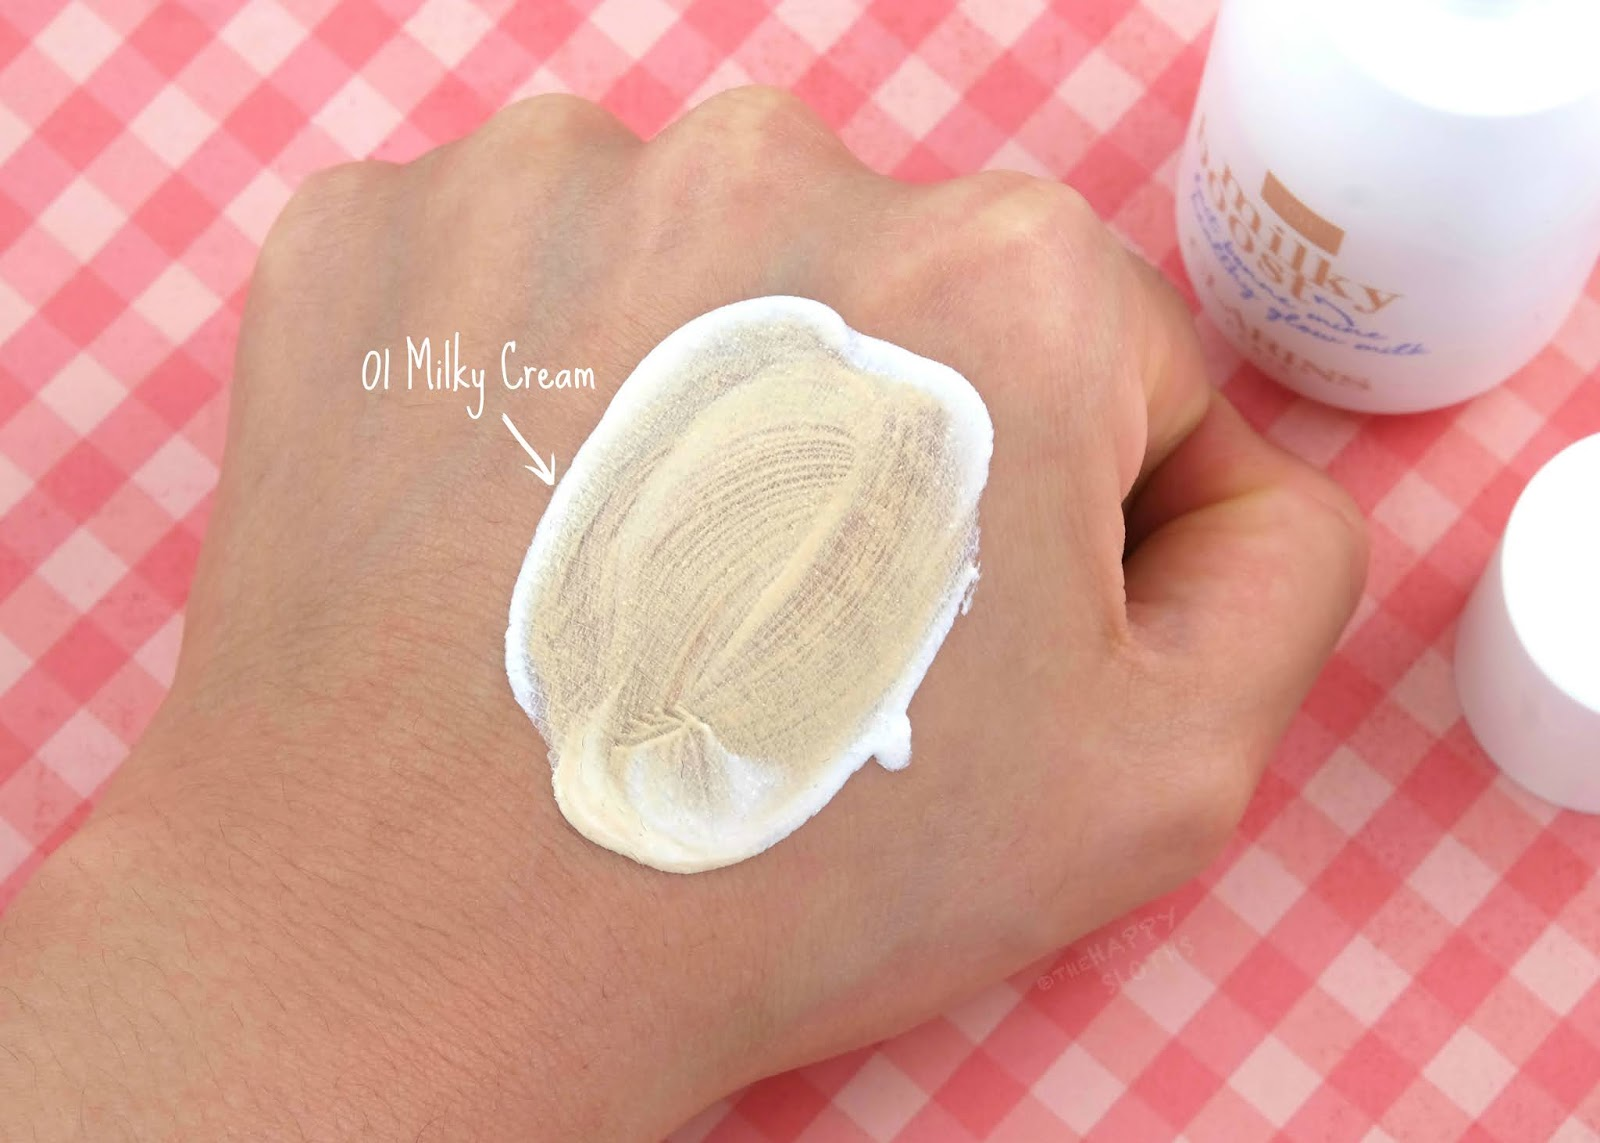 "Clarins | Milky Boost Foundation in ""01 Milky Boost"": Review and Swatches"